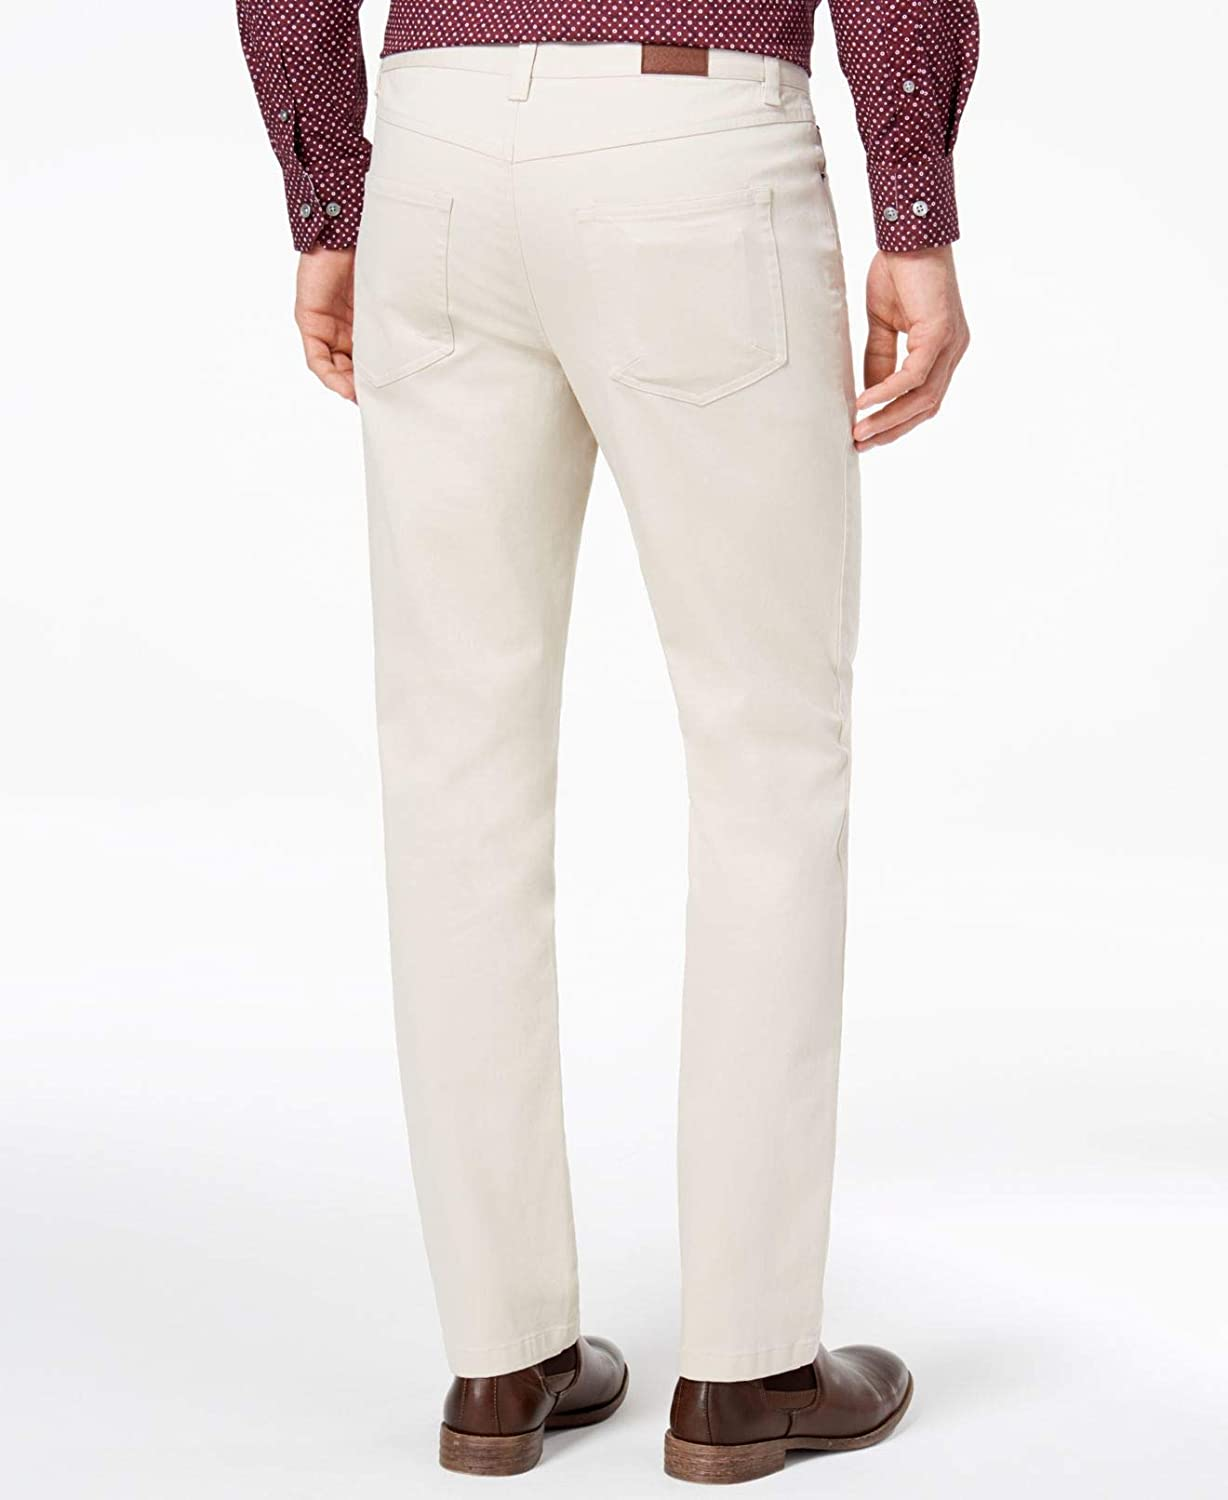 c1897367b Tasso Elba Mens 40X32 Vintage Solid Stretch Pants White Ivory 40 at Amazon  Men's Clothing store: